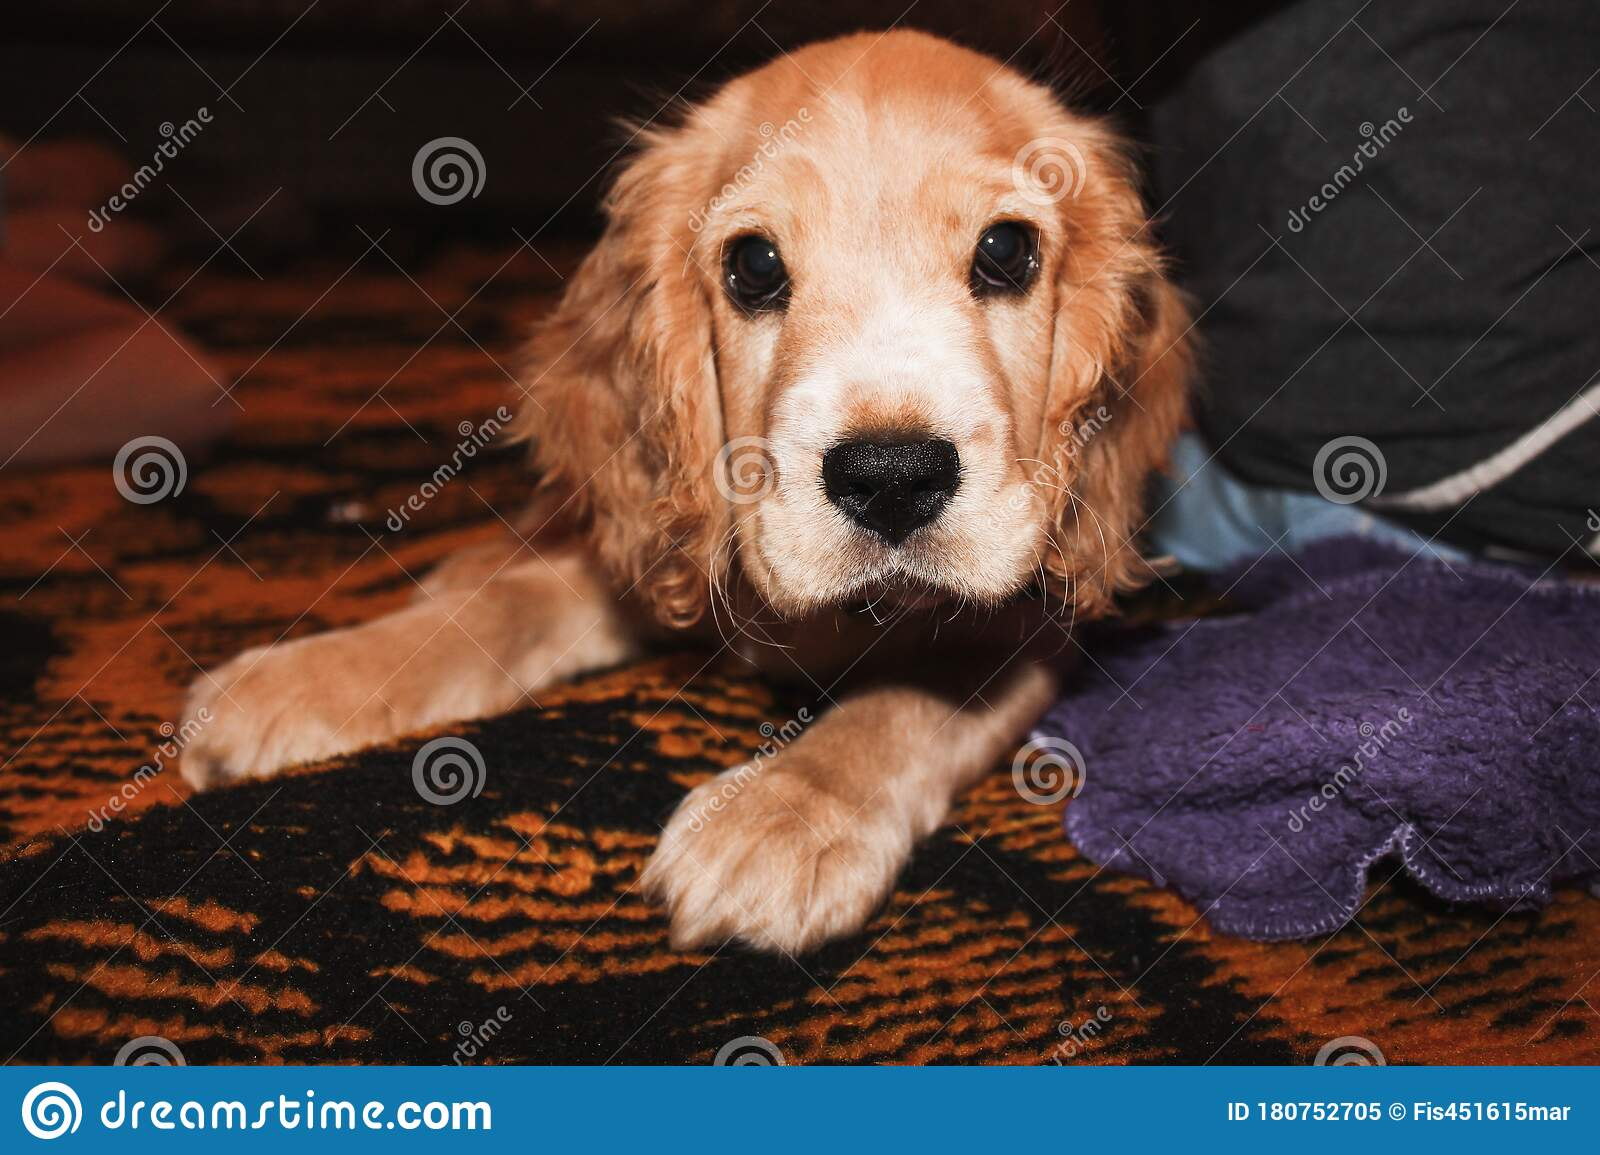 Little Red Cocker Spaniel Puppy Lies And Plays Stock Image Image Of Obedient Looking 180752705